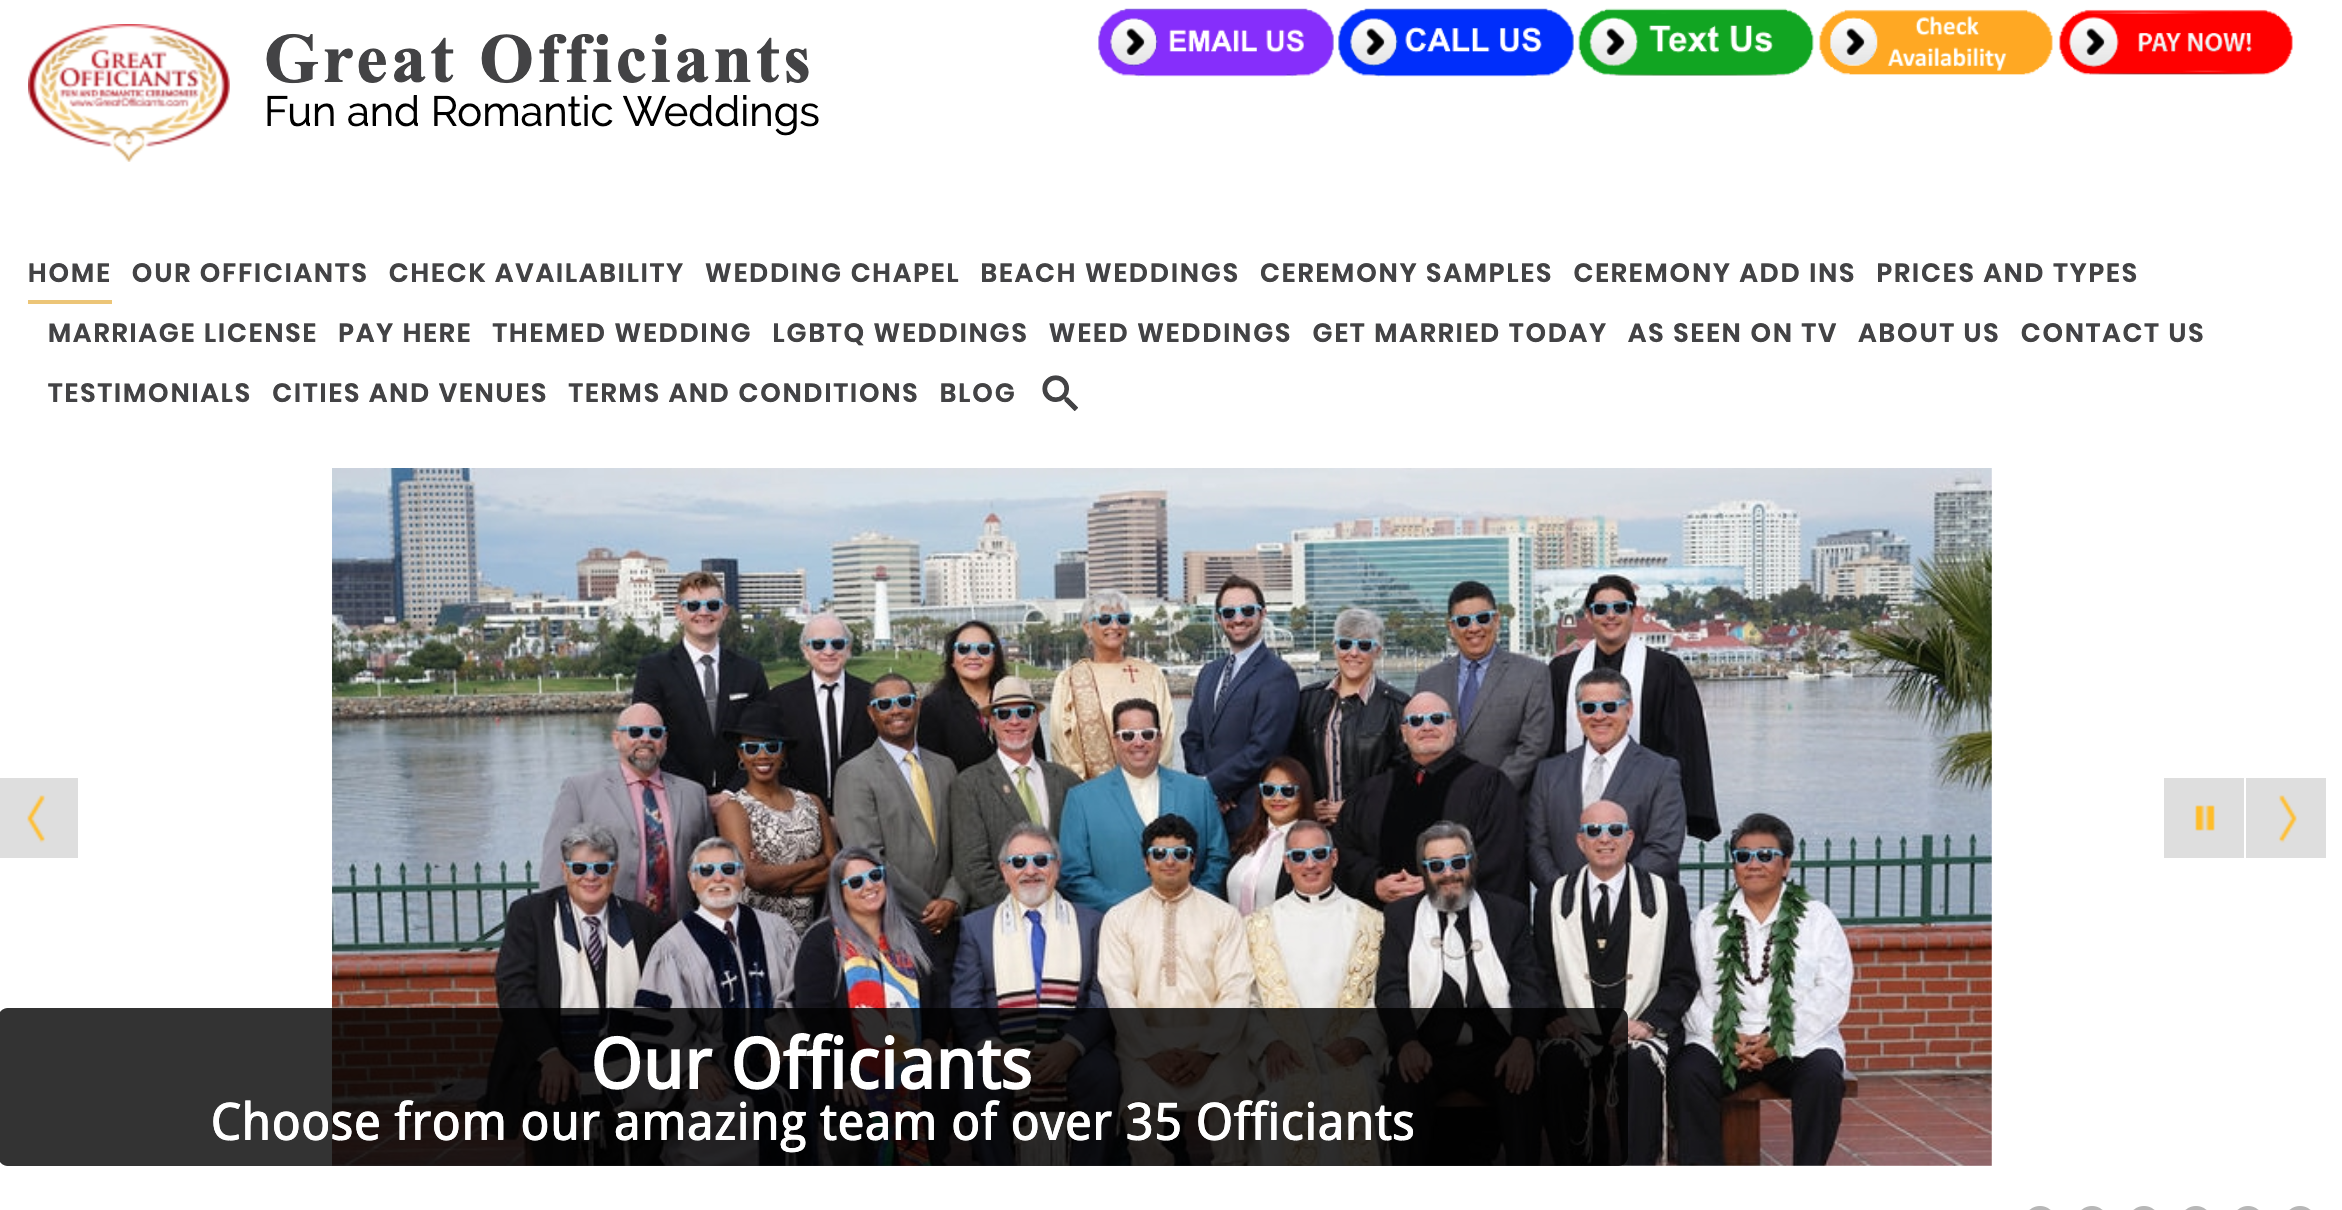 Great Officiants Wedding Officiant Los Angeles